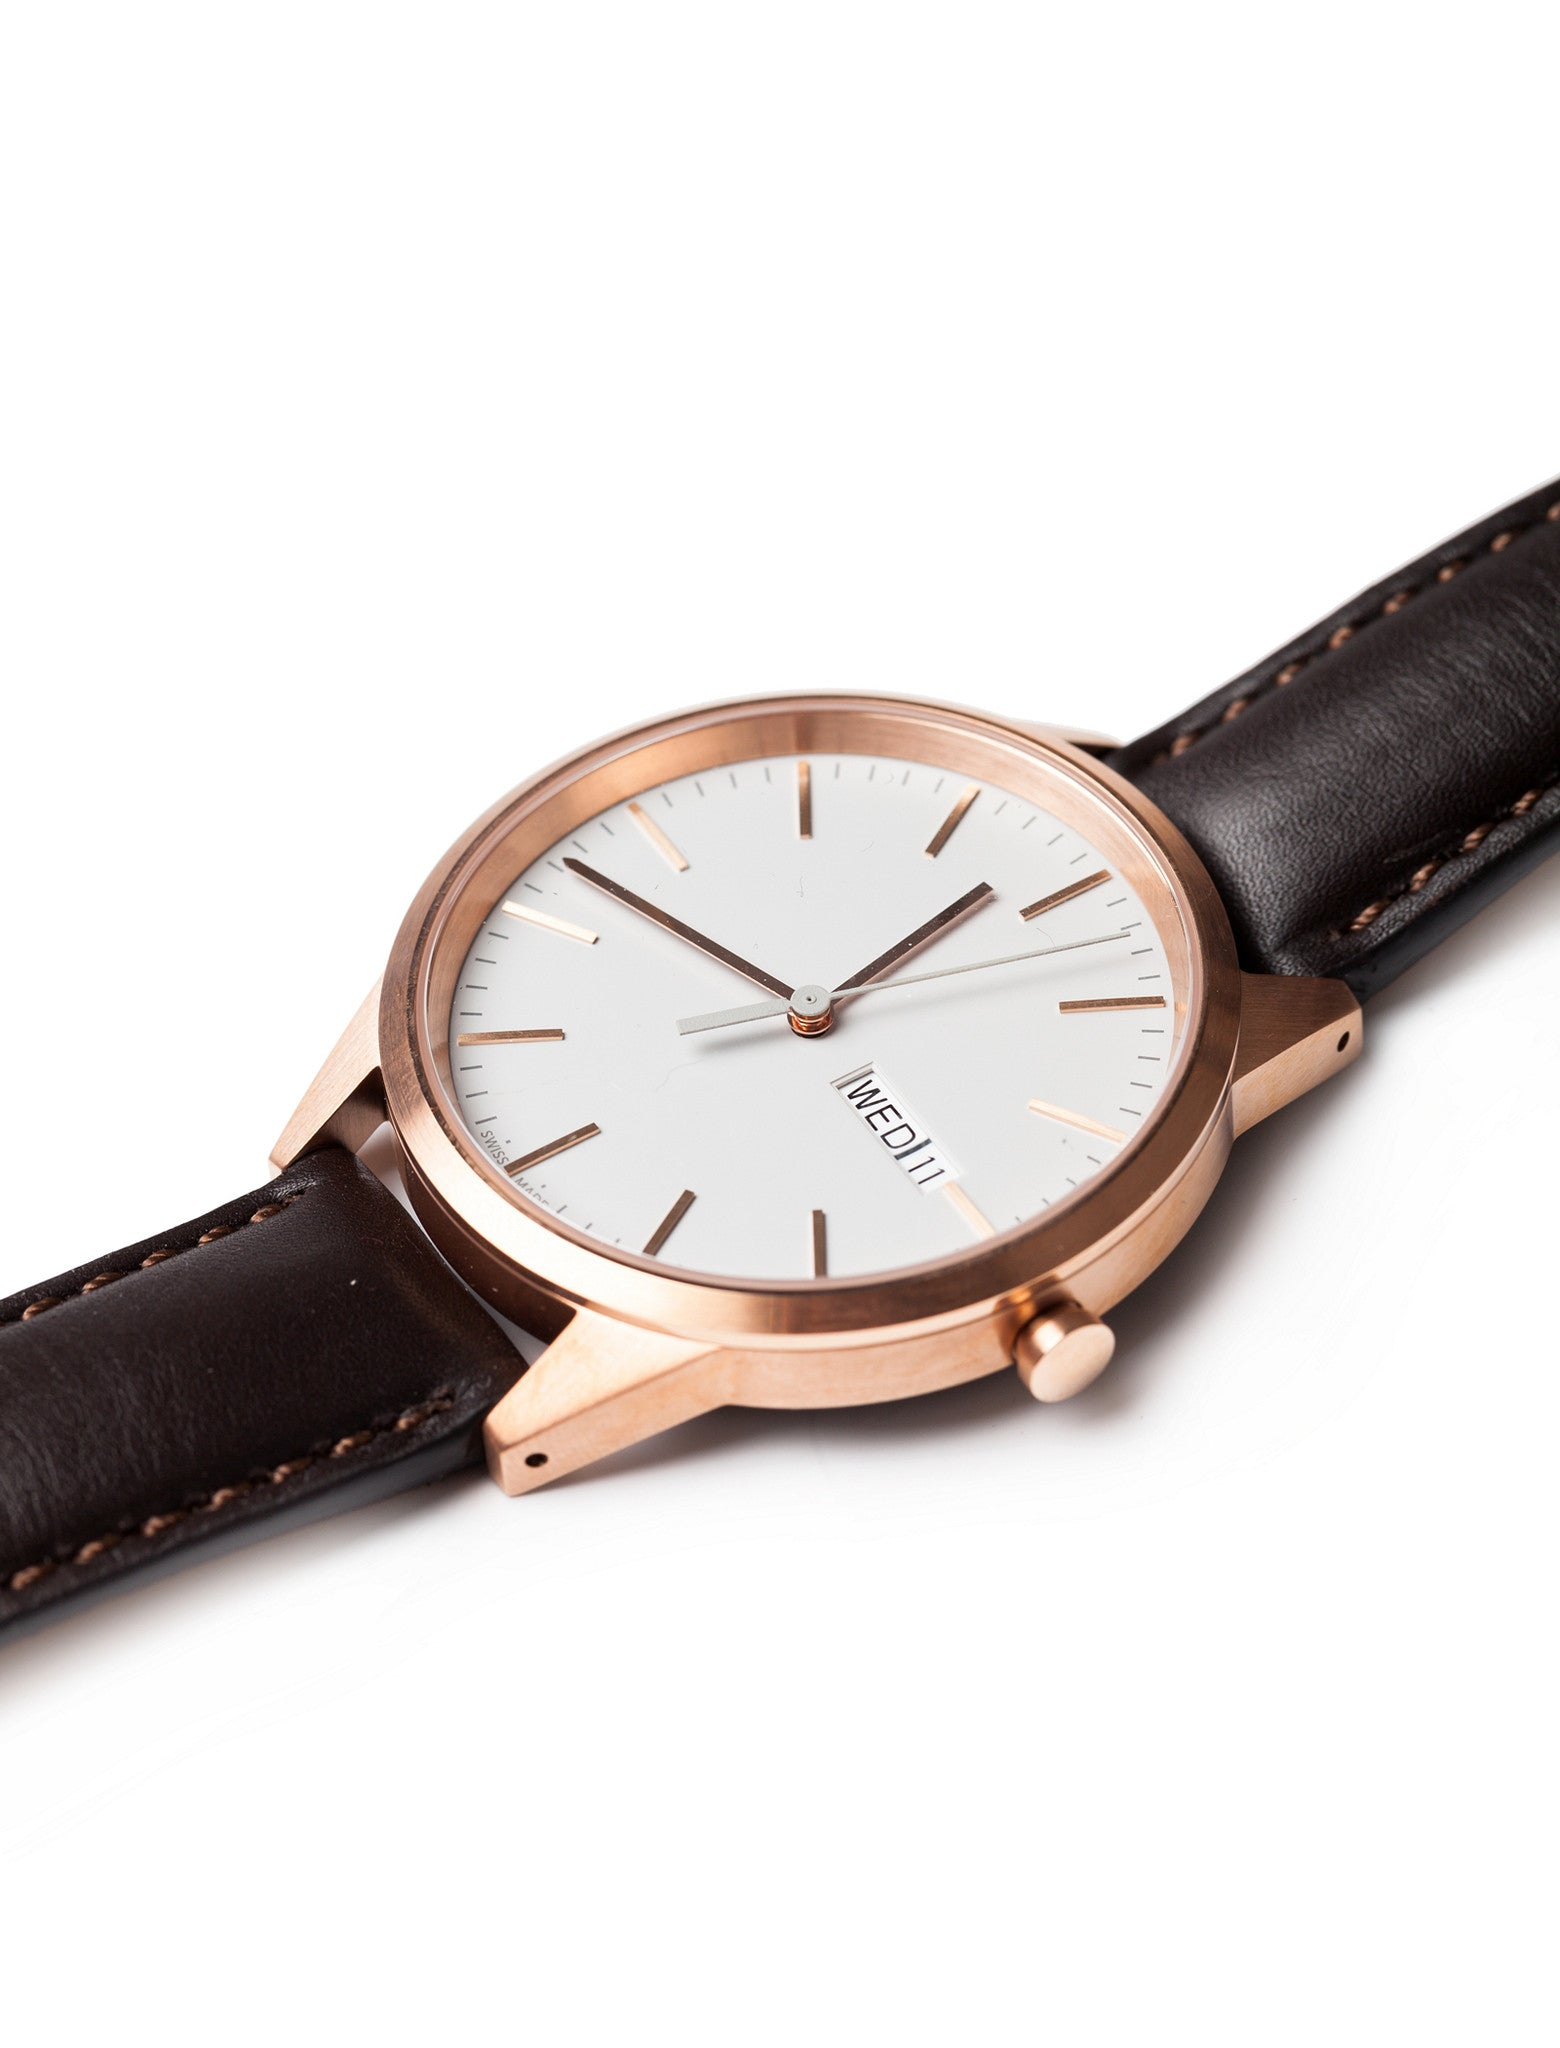 C40 Calendar Watch PVD Rose Gold